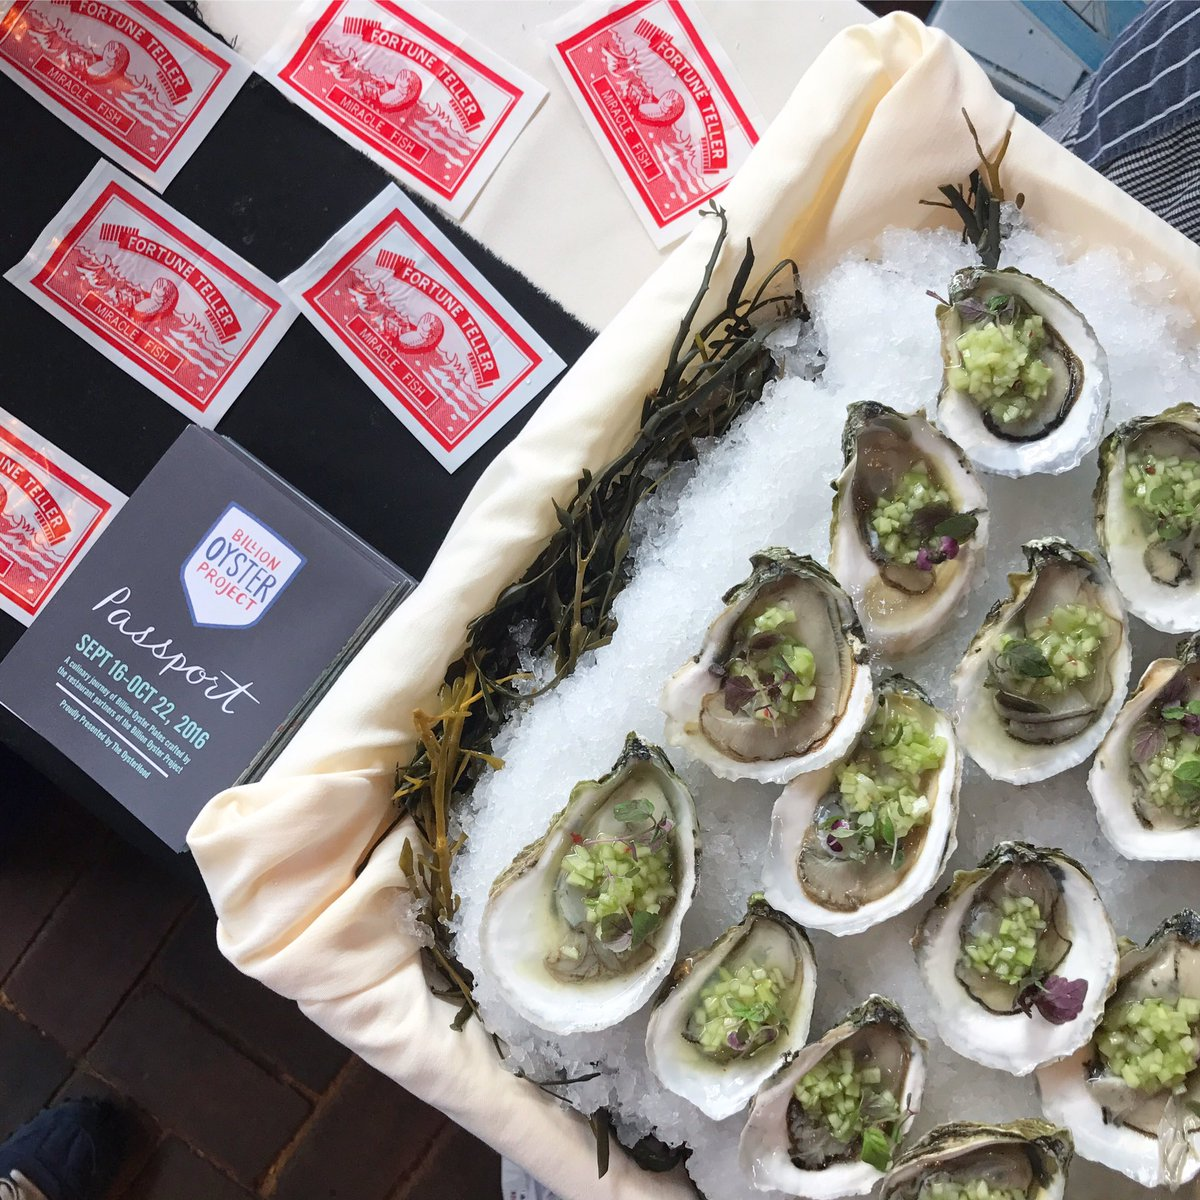 Oyster Bash is on! Chef Mike is serving up Mystic oysters with a cucumber-ginger mignonette and red shiso #NYCWFF https://t.co/3bFN9US3pD